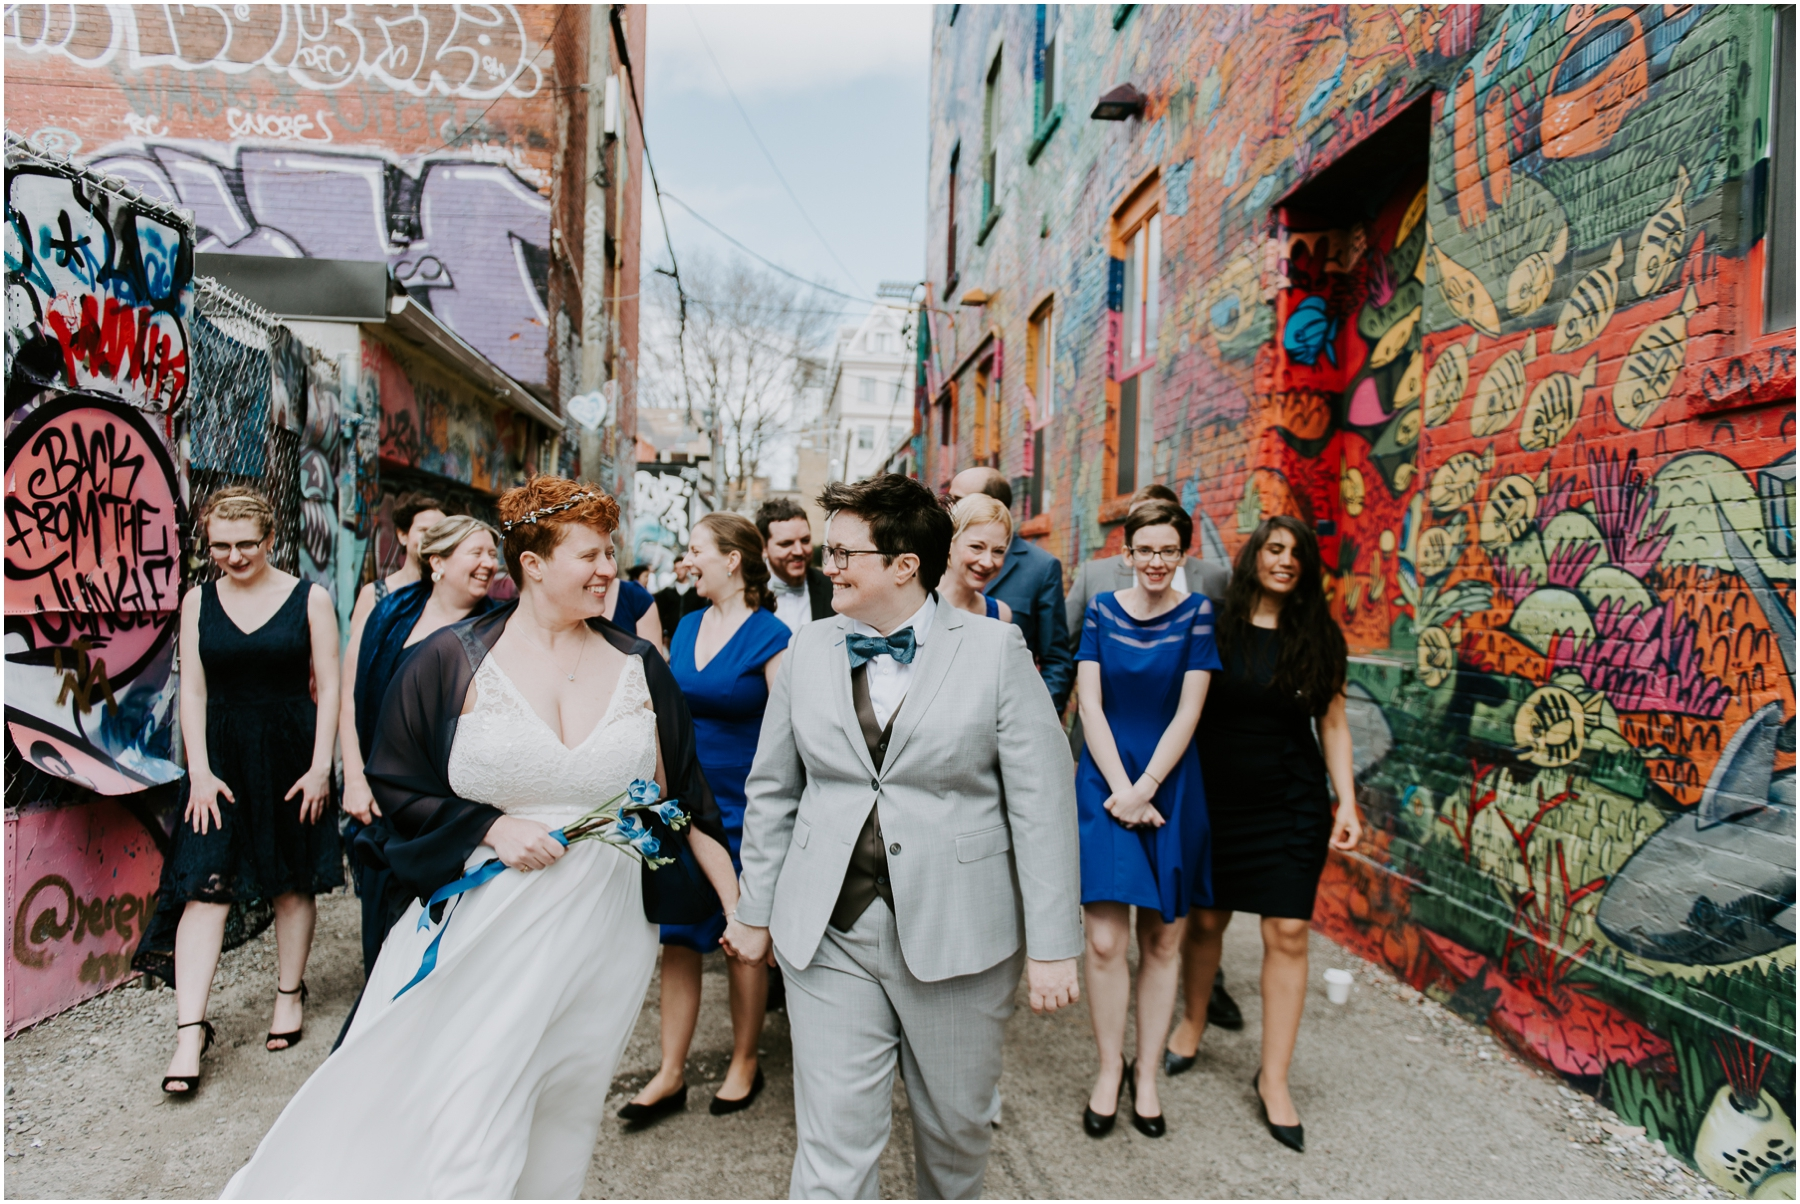 Grafitti Alley Queen W Toronto wedding party walking